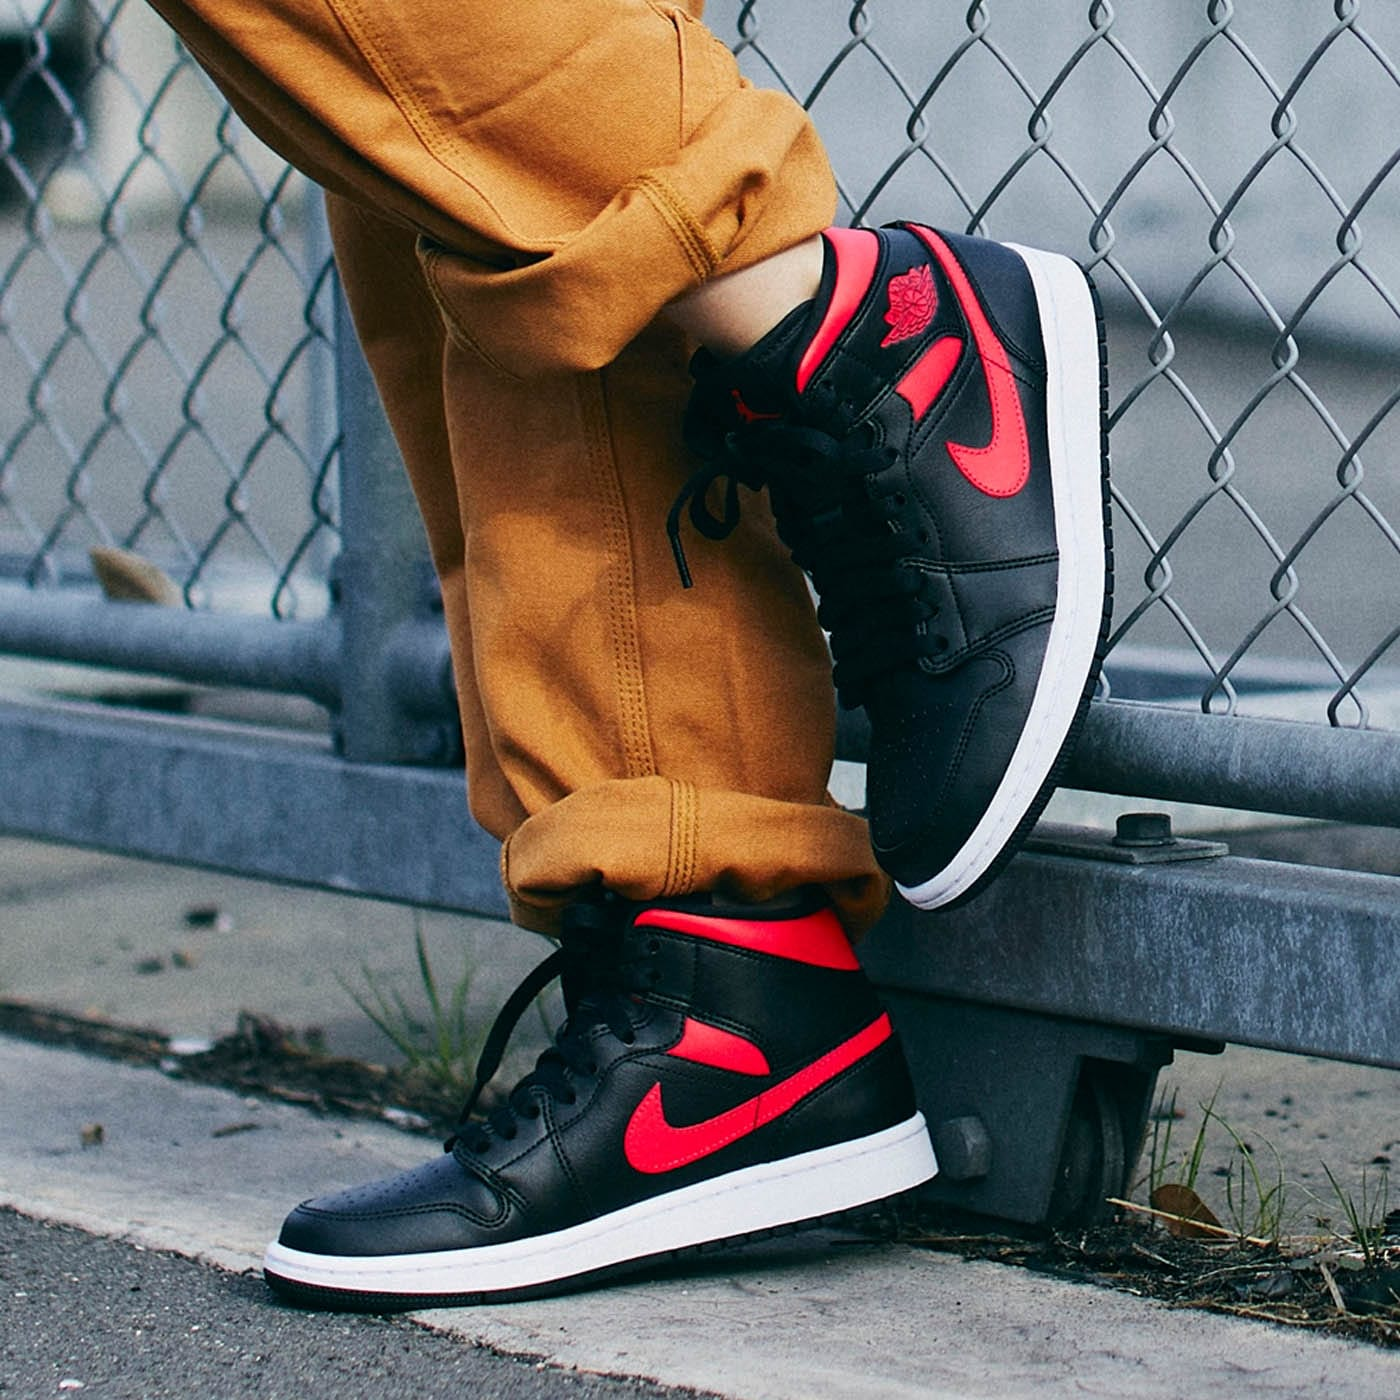 Air Jordan 1 Wmns Mid 'Siren Red' - Kick Game